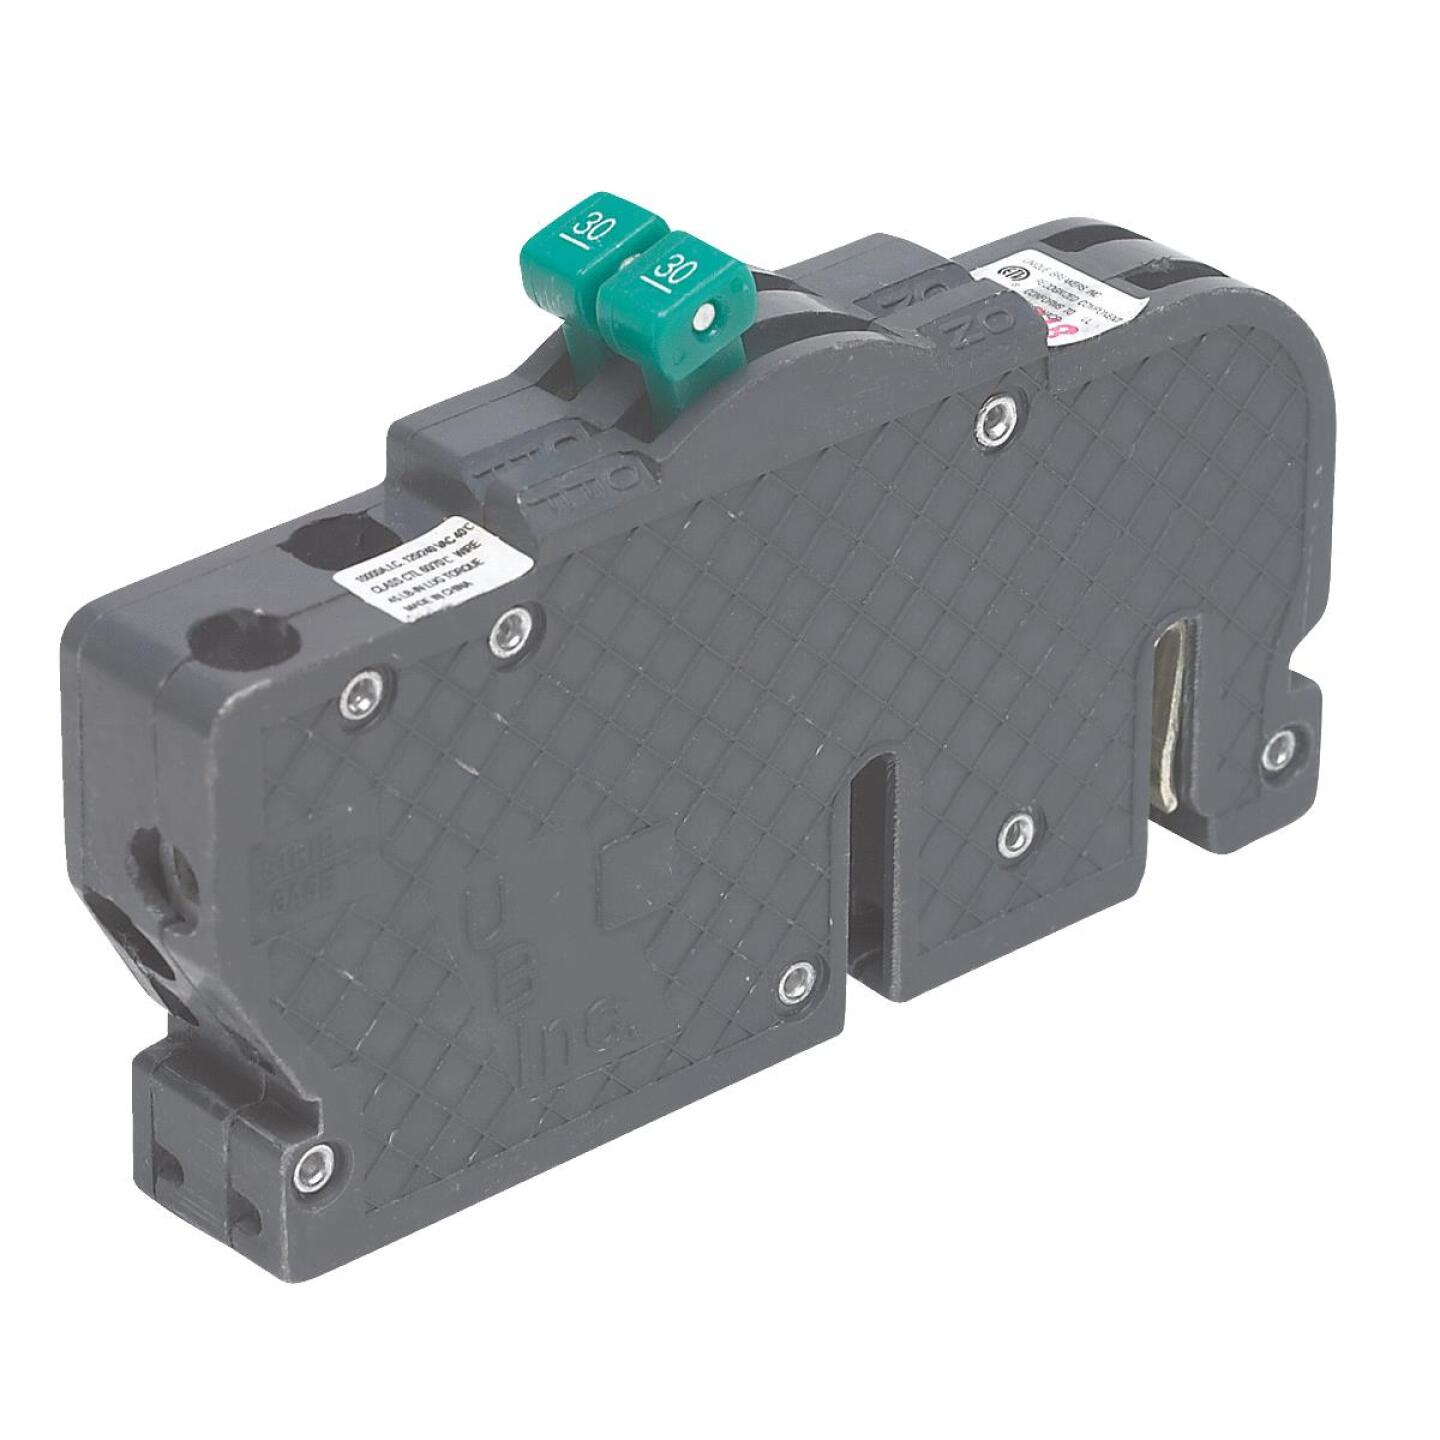 Connecticut Electric 50A/50A Twin Single-Pole Standard Trip Packaged Replacement Circuit Breaker For Zinsco Image 1